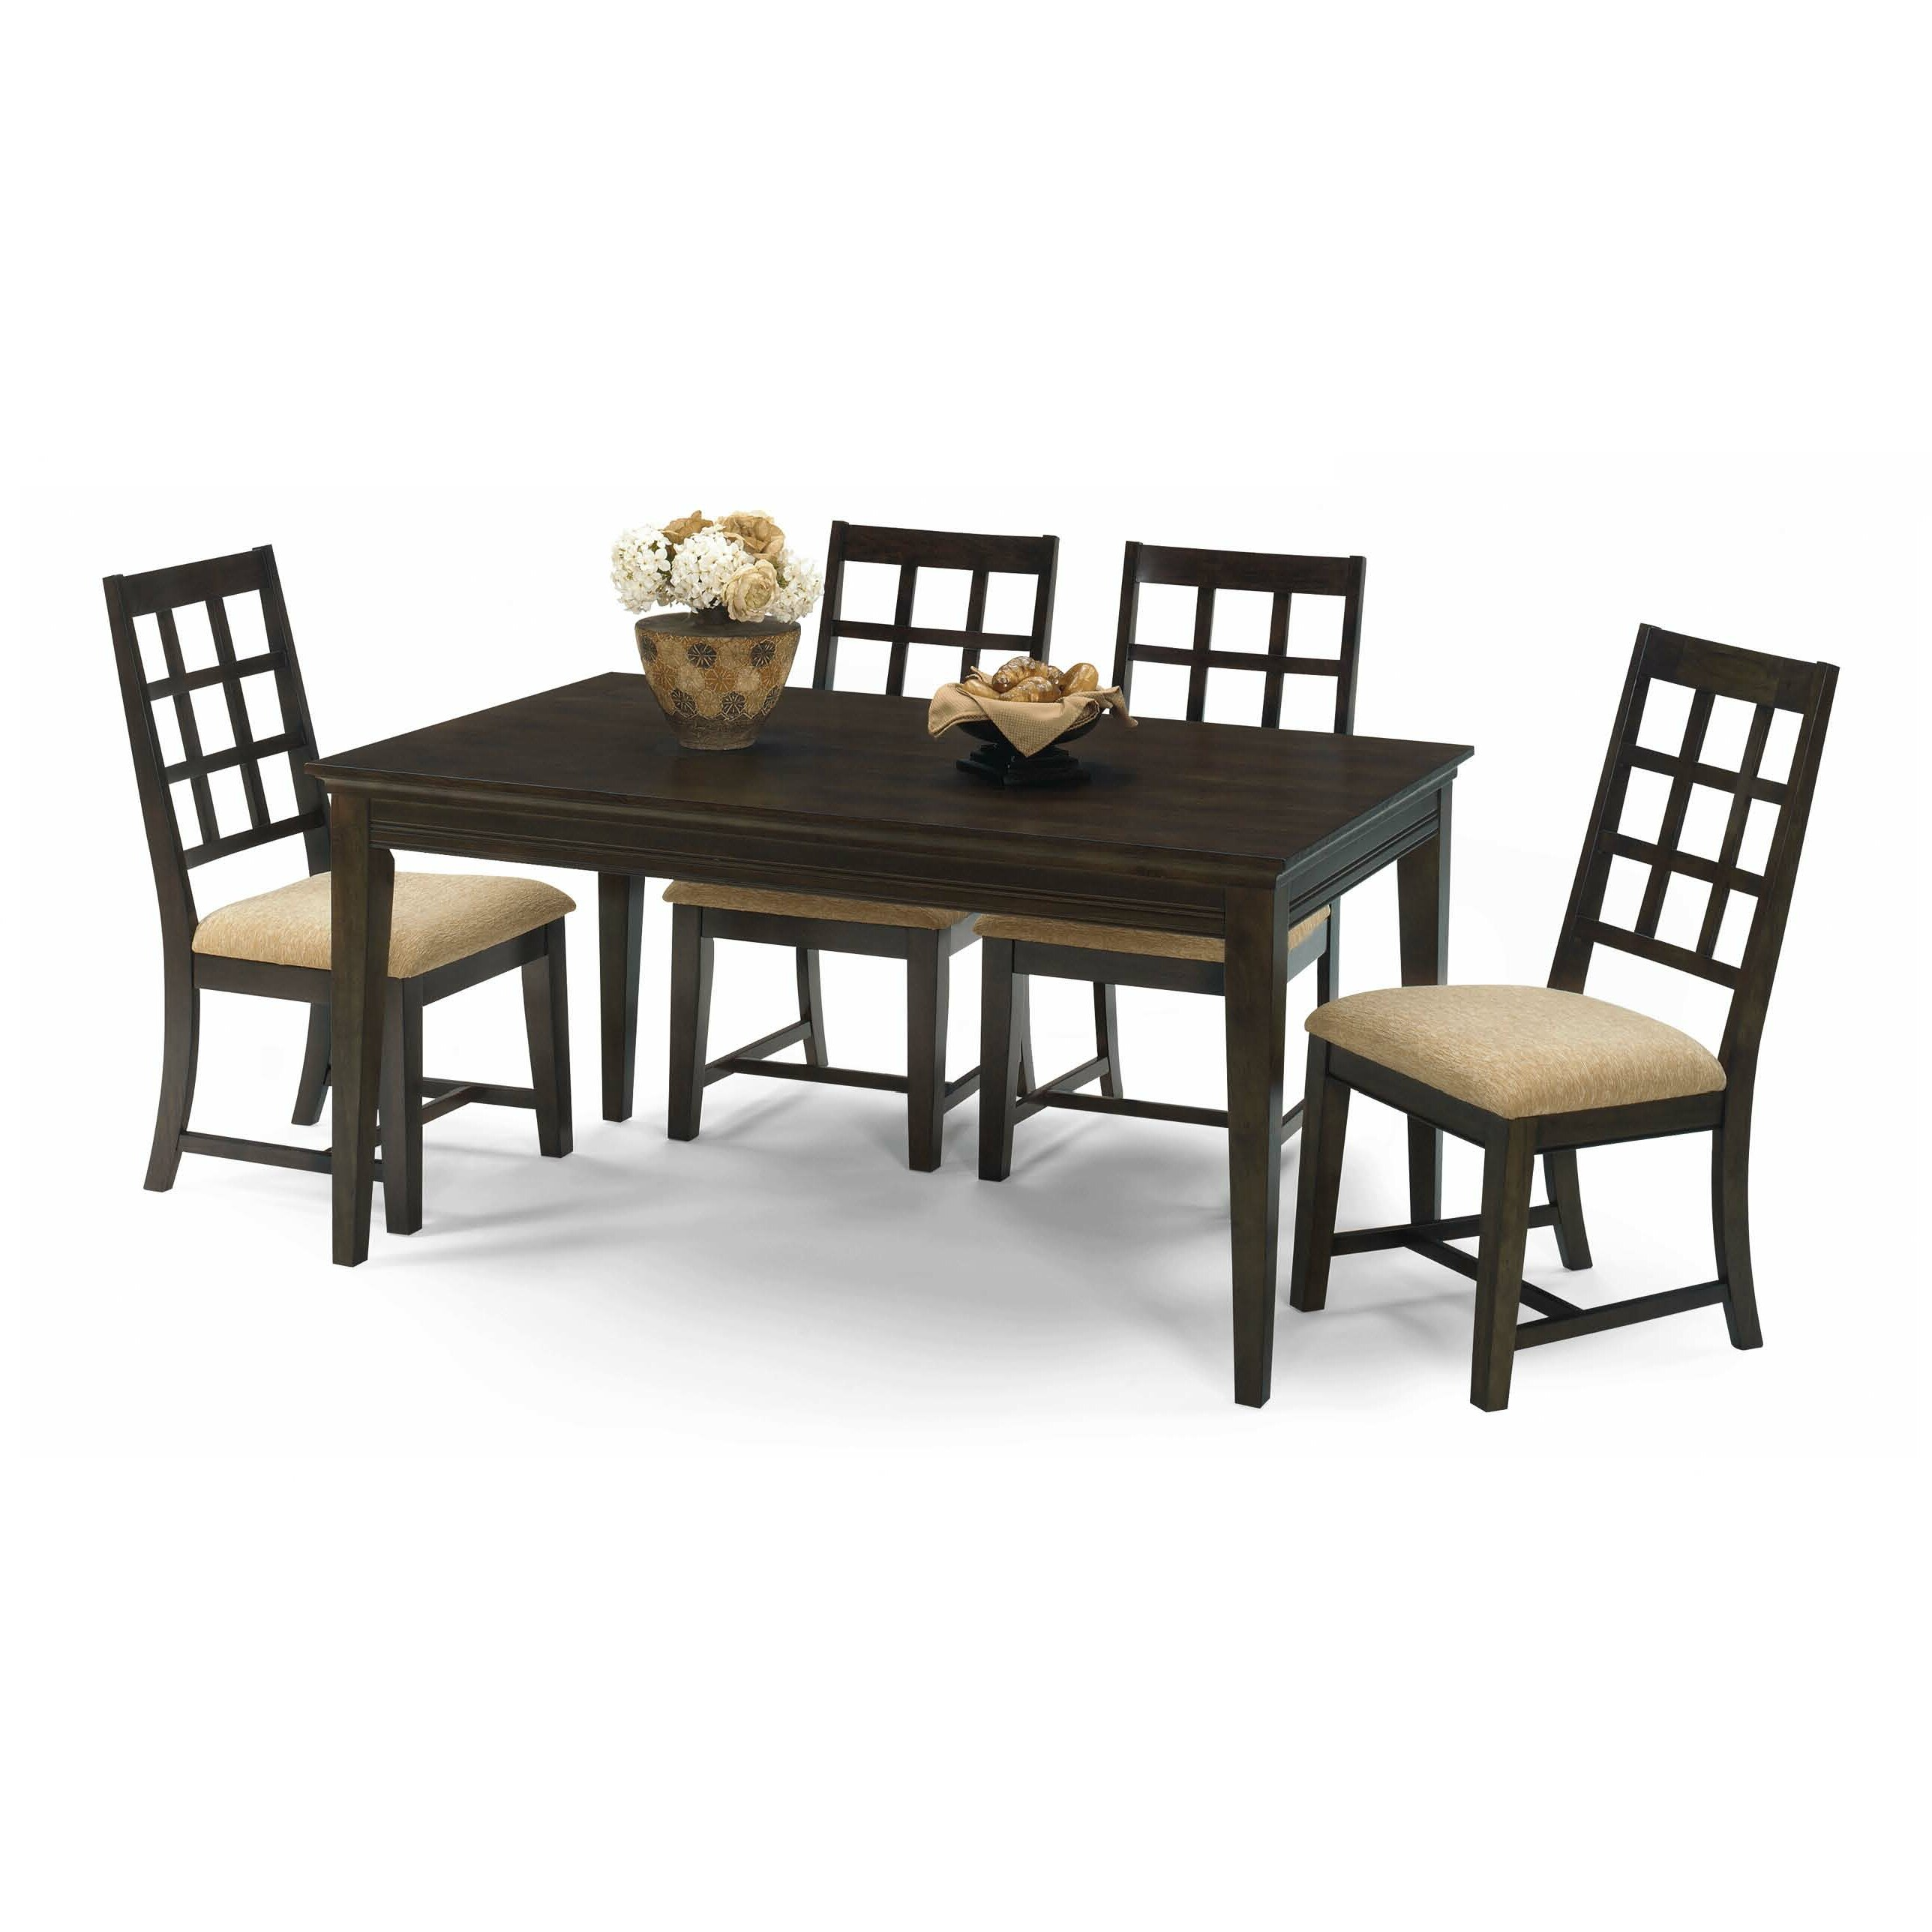 Progressive furniture casual traditions 5 piece dining set reviews - Casual kitchen sets ...